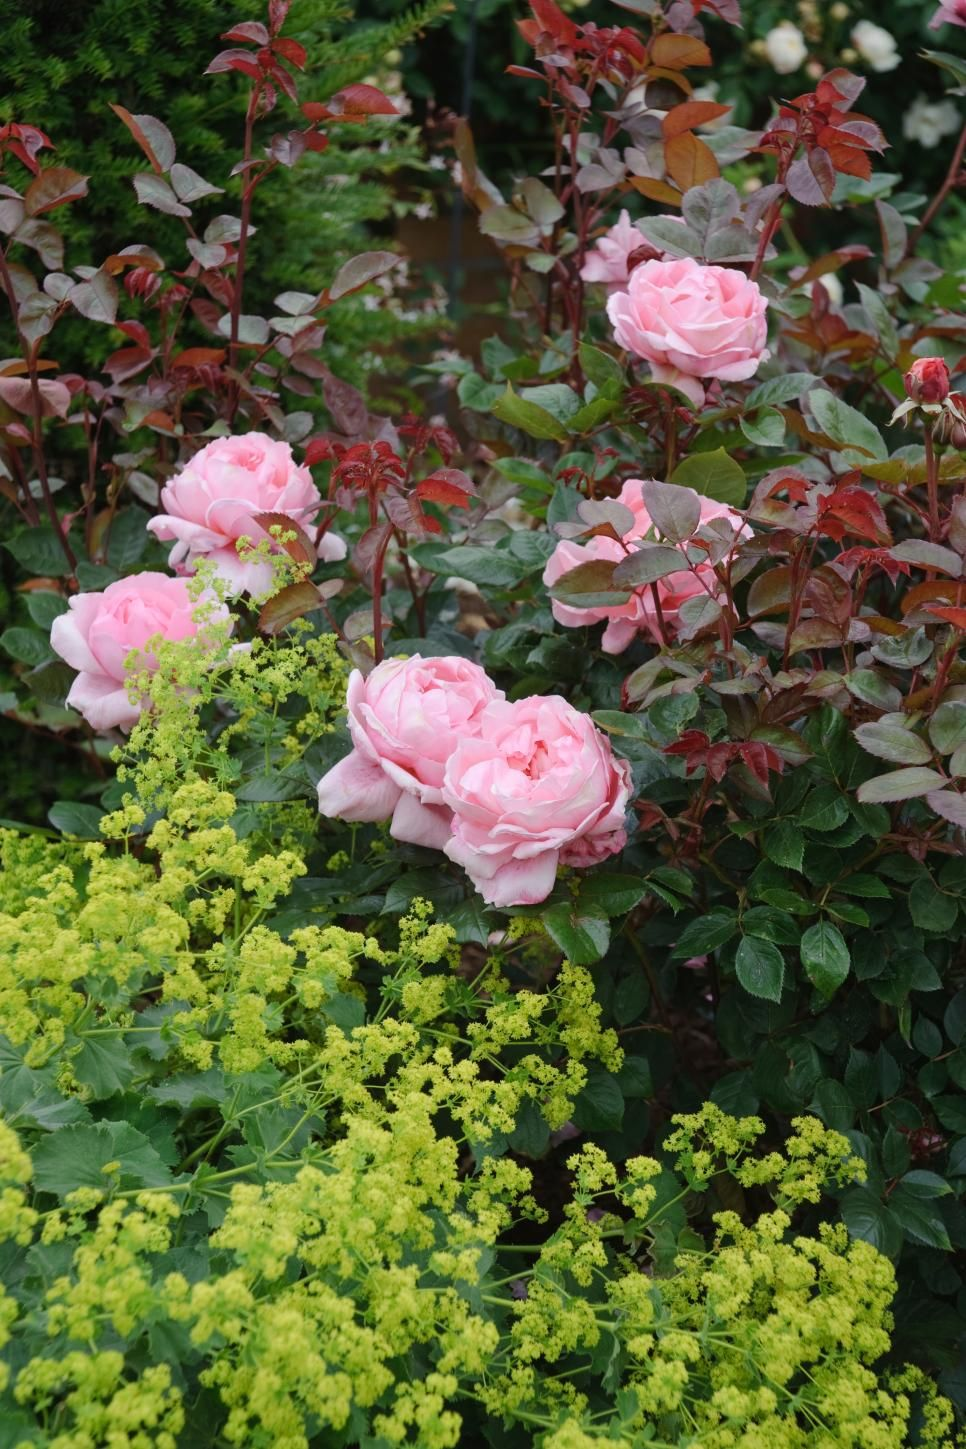 The most popular english roses in america pinterest david austin british rose breeder david austin creates some of the most beautiful flowers in the world find out which roses are most in demand in american gardens izmirmasajfo